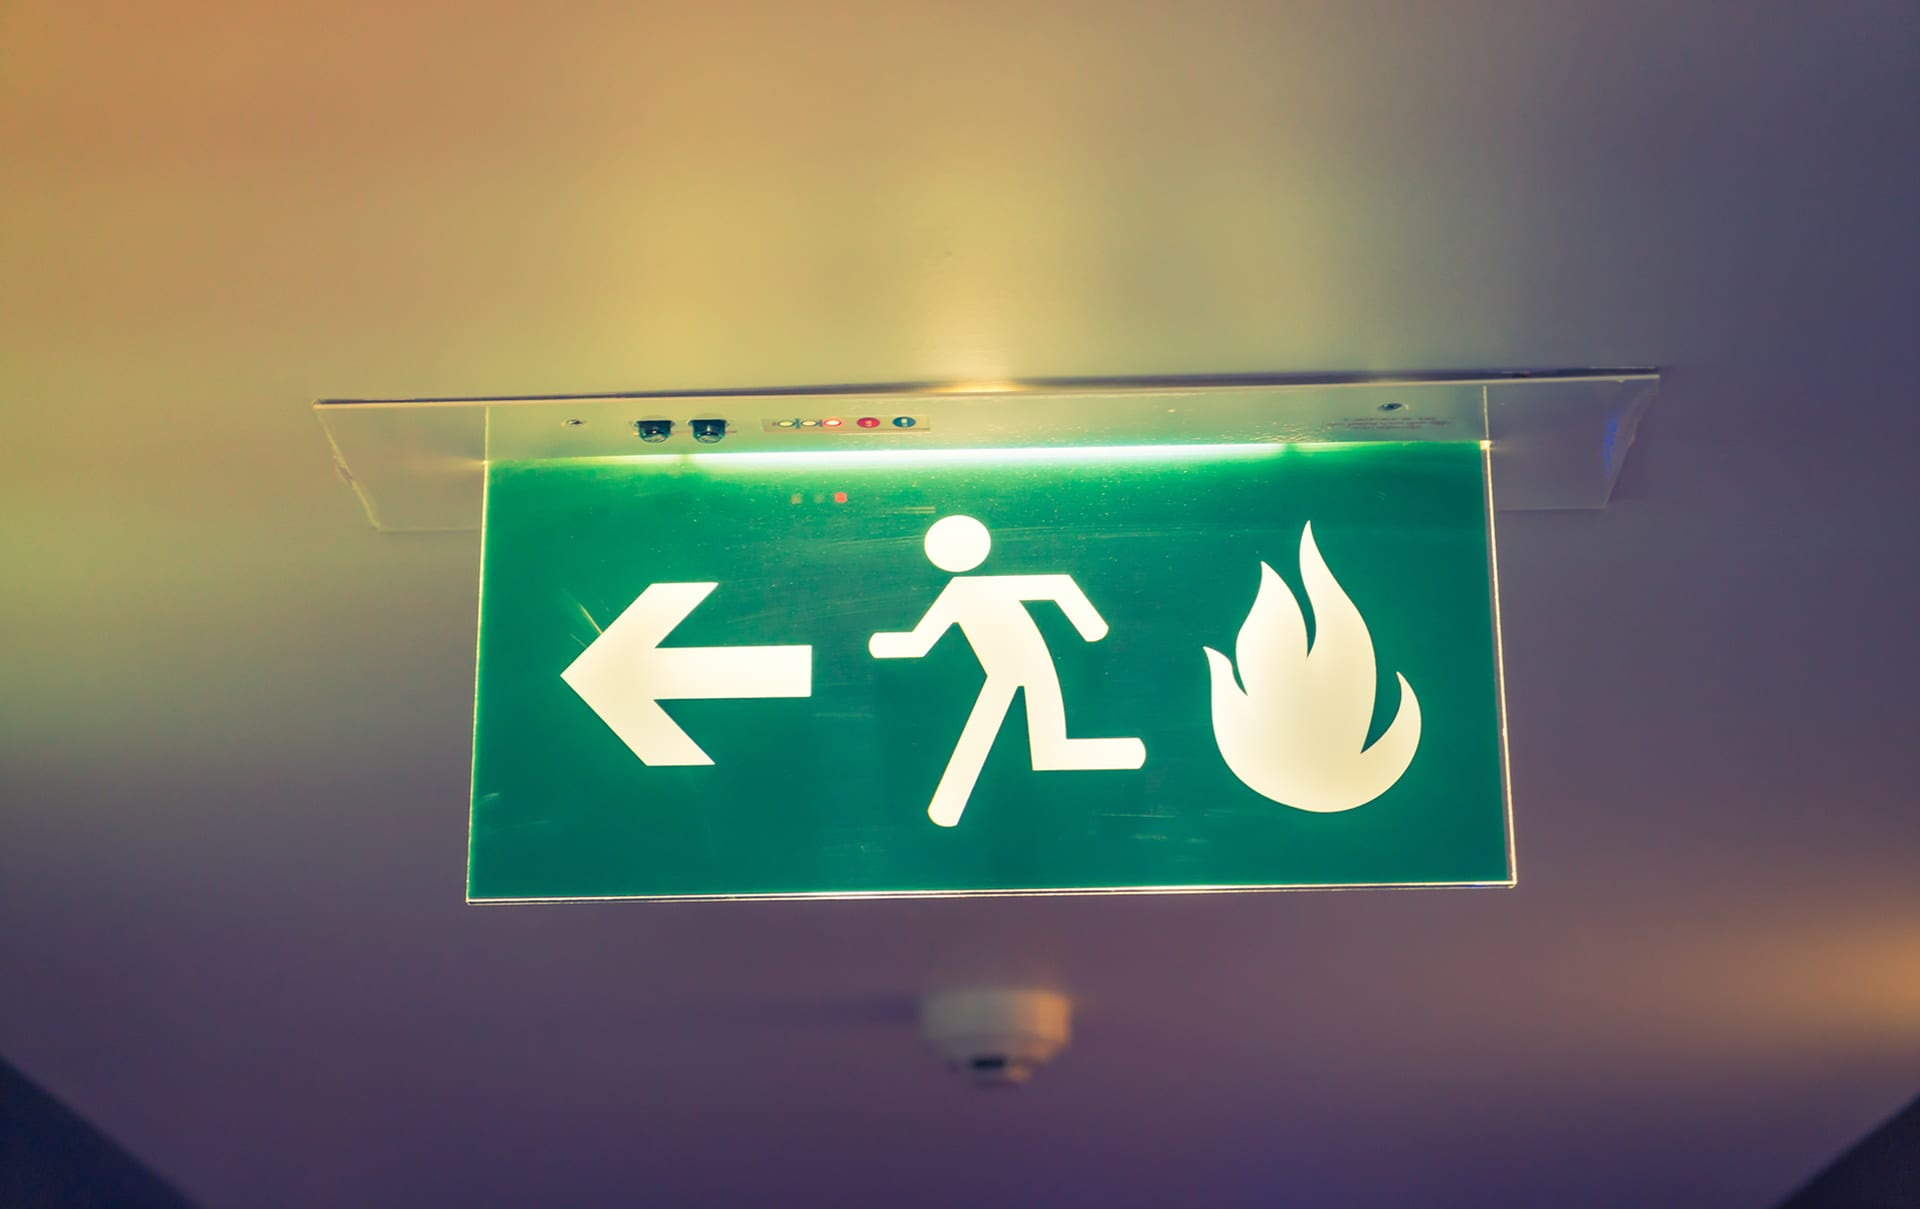 passive fire stopping exit sign on ceiling